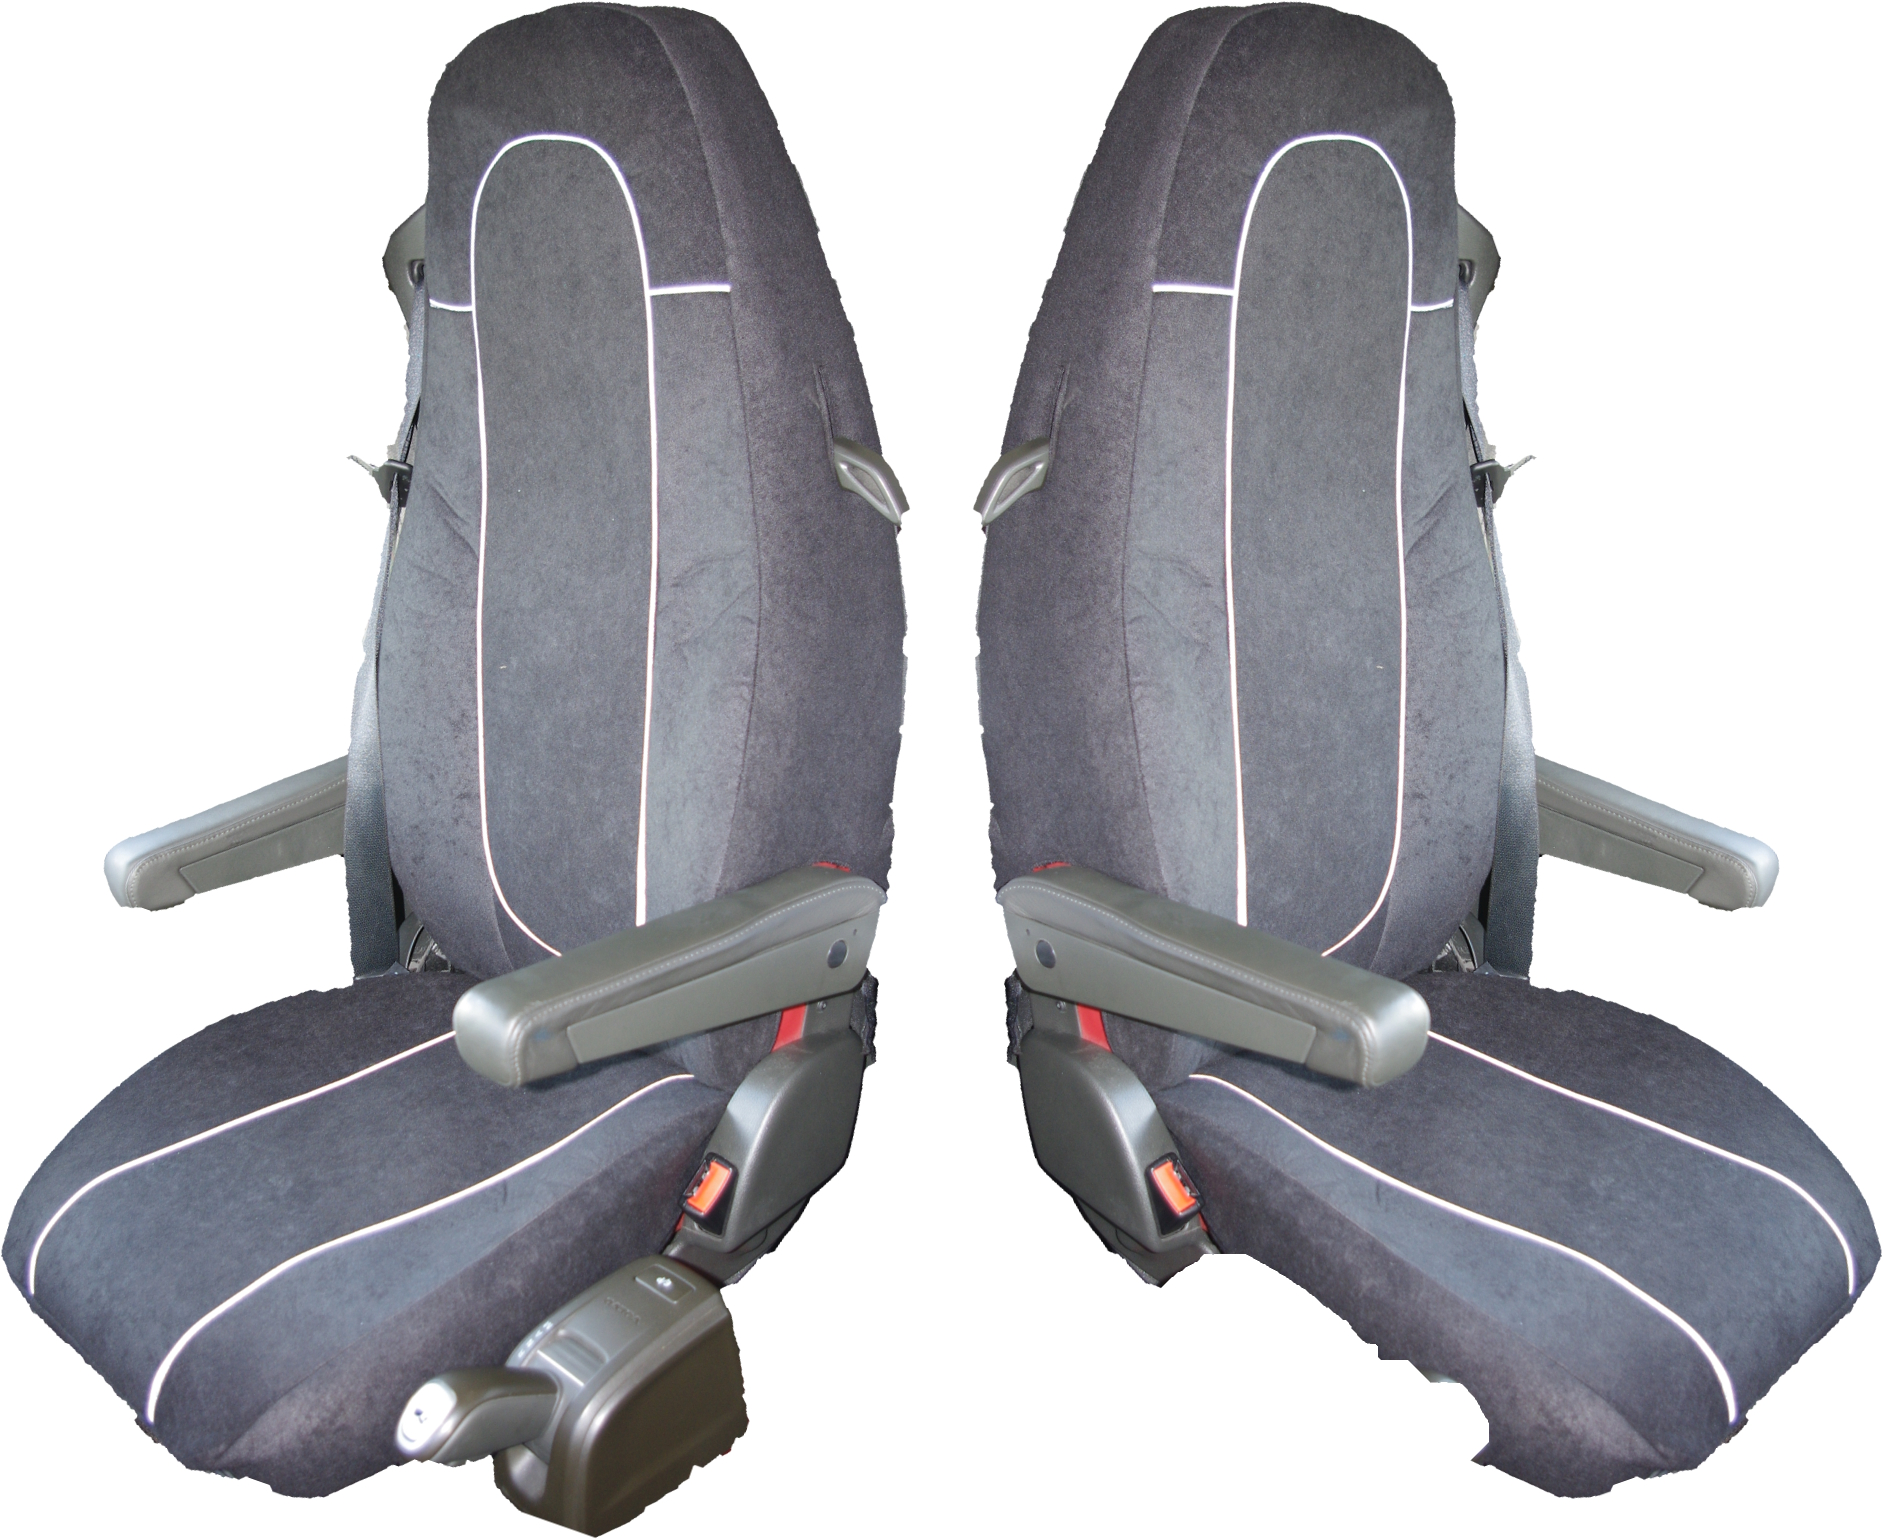 Volvo Fh4 Seat Covers Www Truckers Shop Com